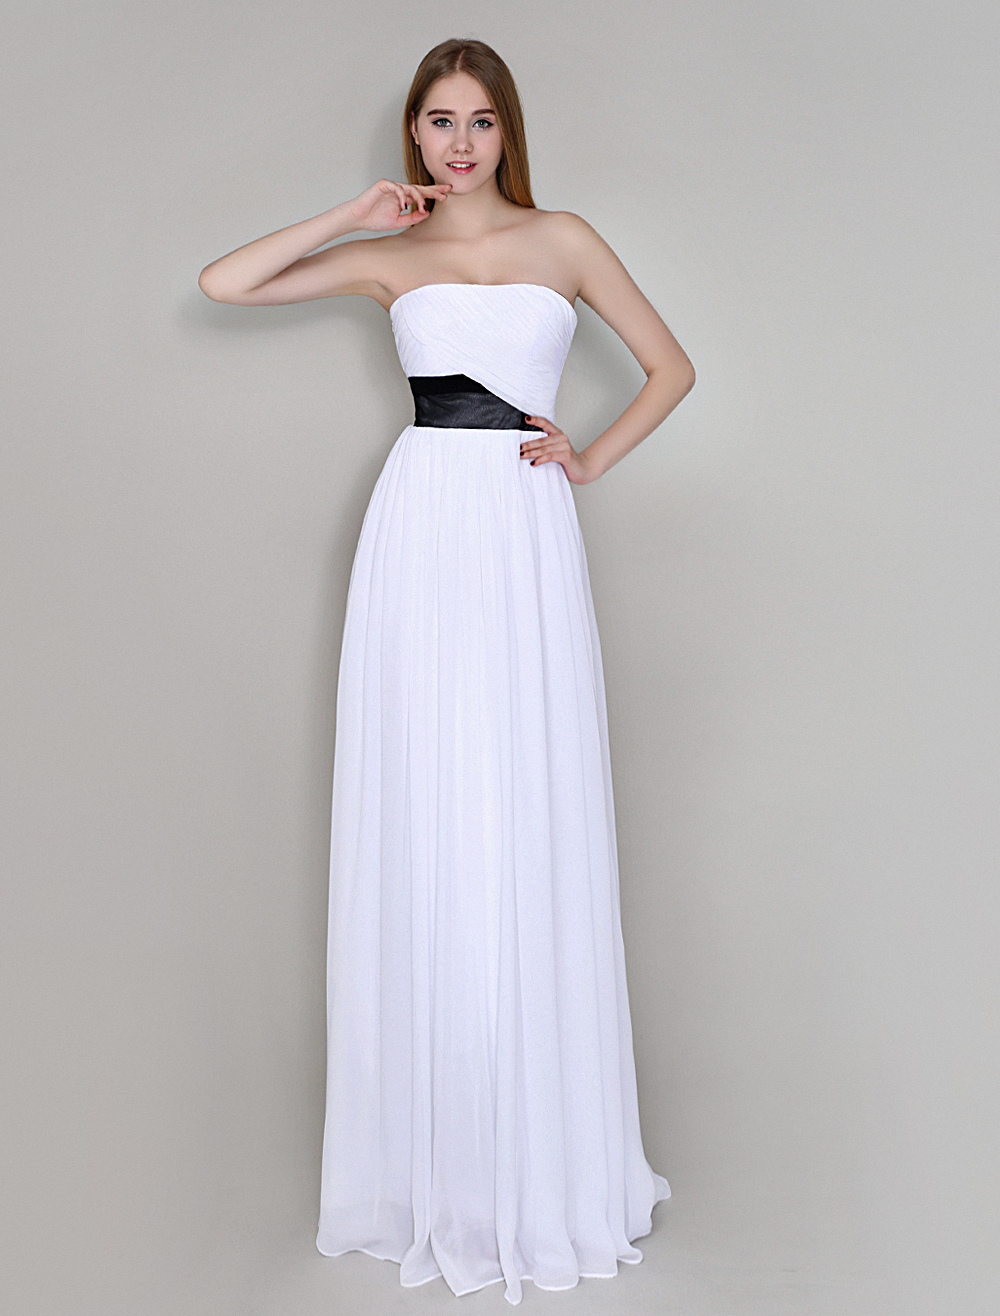 White Chiffon Floor-Length Bridesmaid Dress with Strapless Sheath Ruched Wedding Guest Dress